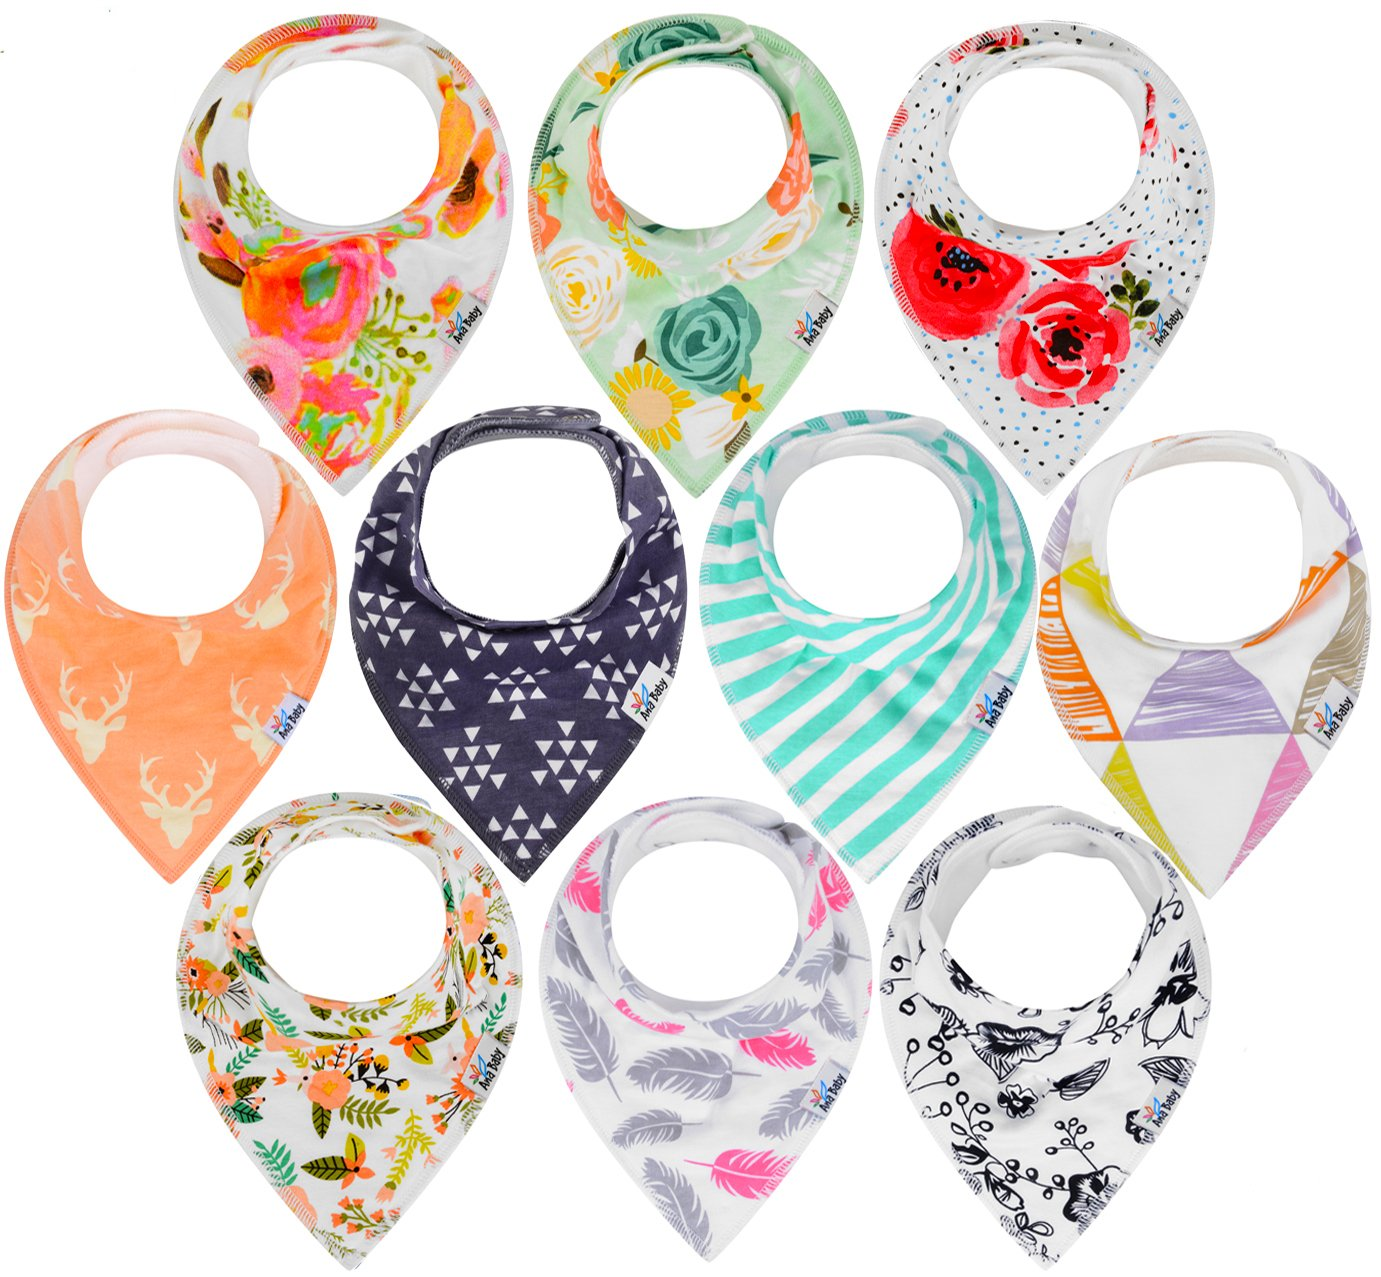 10-Pack Baby Bandana Drool Bibs for Drooling and Teething, 100% Organic Cotton, Soft and Absorbent, Hypoallergenic Bibs for Baby Girls - Baby Shower Gift Set by Ana Baby textiles